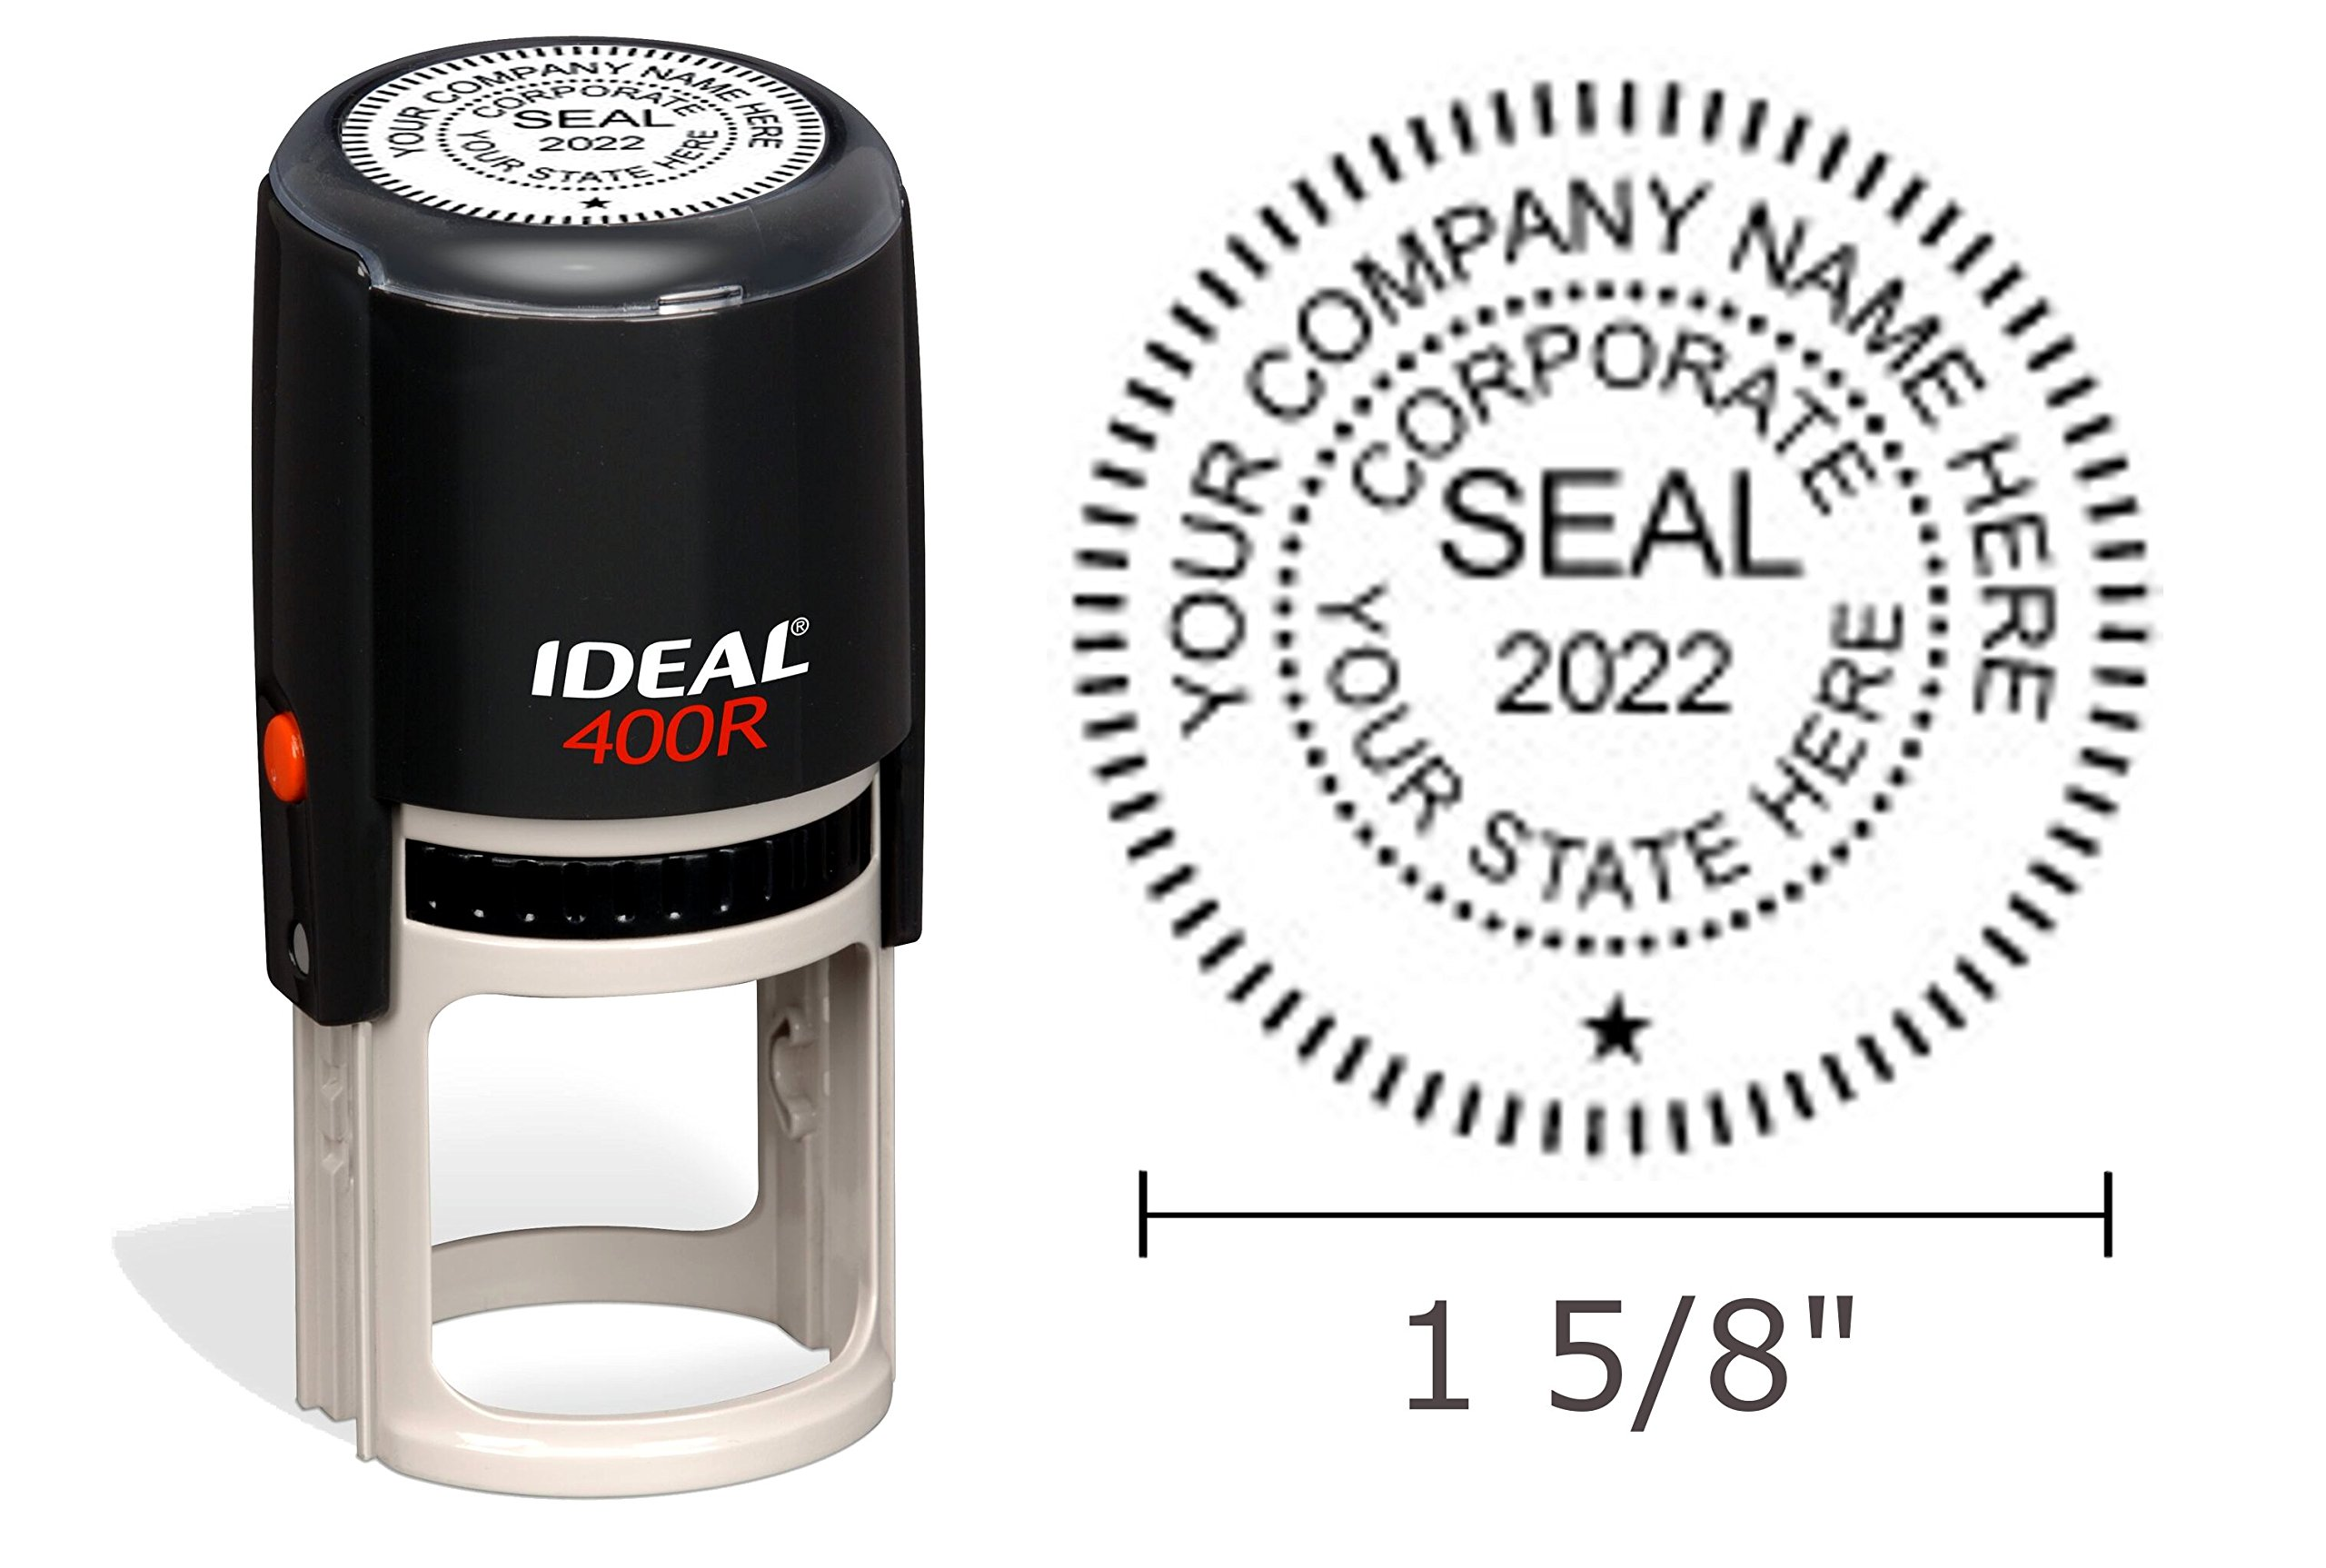 Corporate Seal Stamp, Ideal 400R, Round 1-5/8'' Impression, Black Body by Hubco